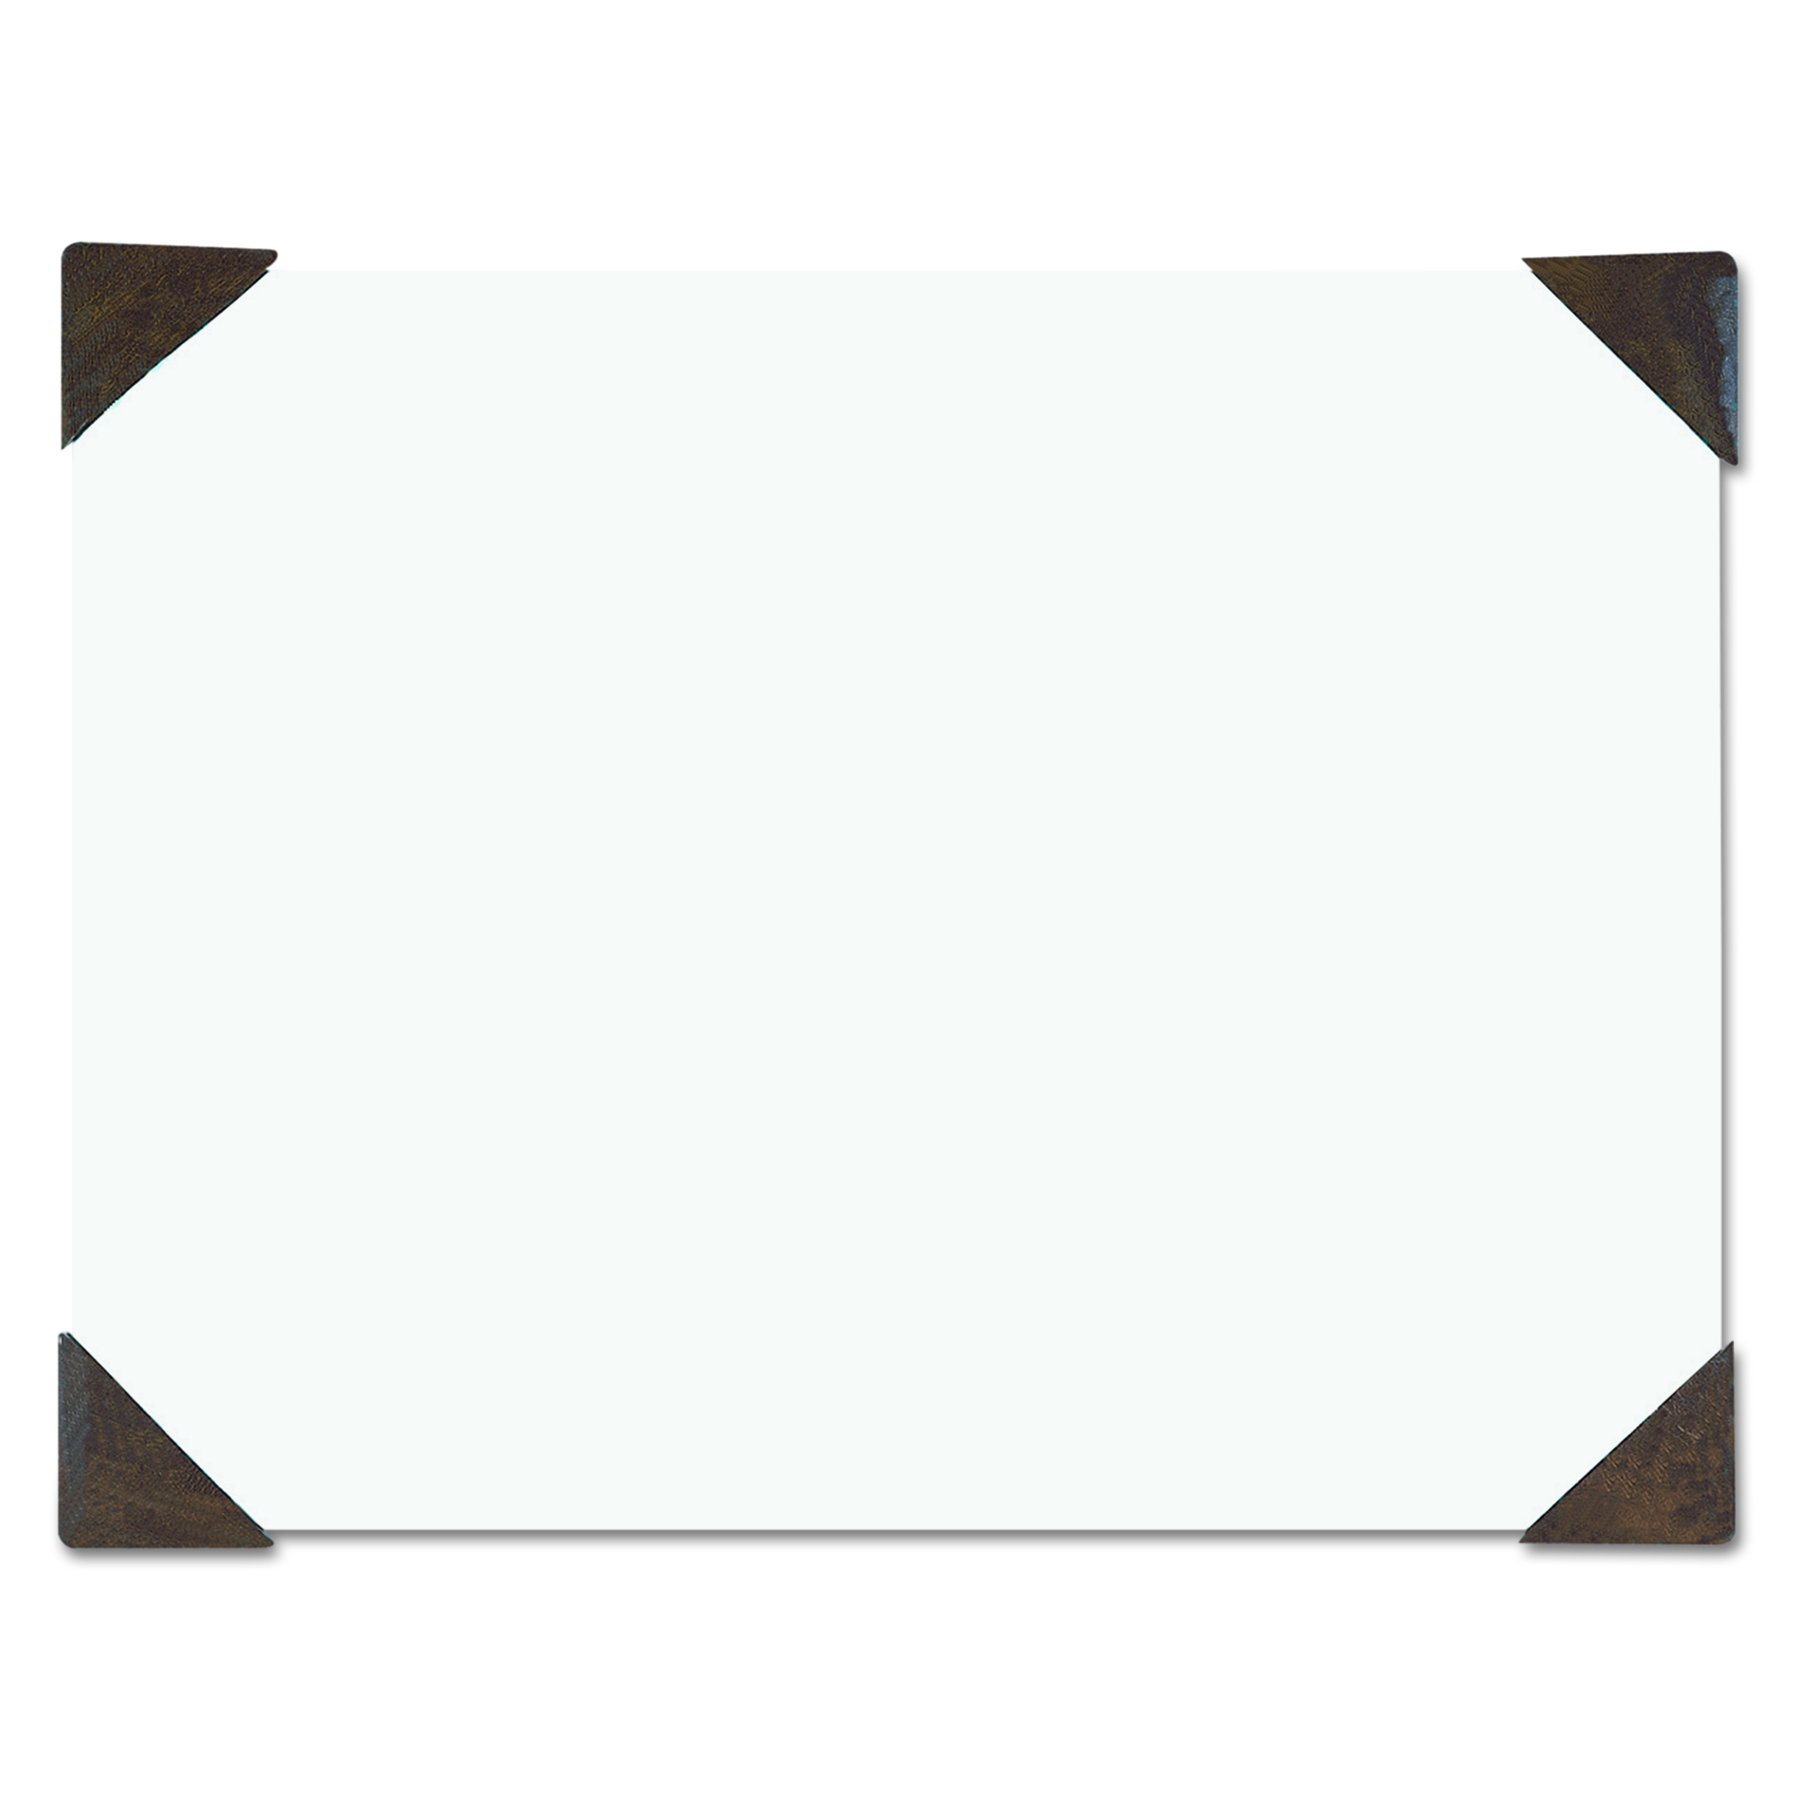 House of Doolittle Doodle Pad Refillable, 50 White Sheets, Brown Holder, 22 x 17 Inch (HOD40003)